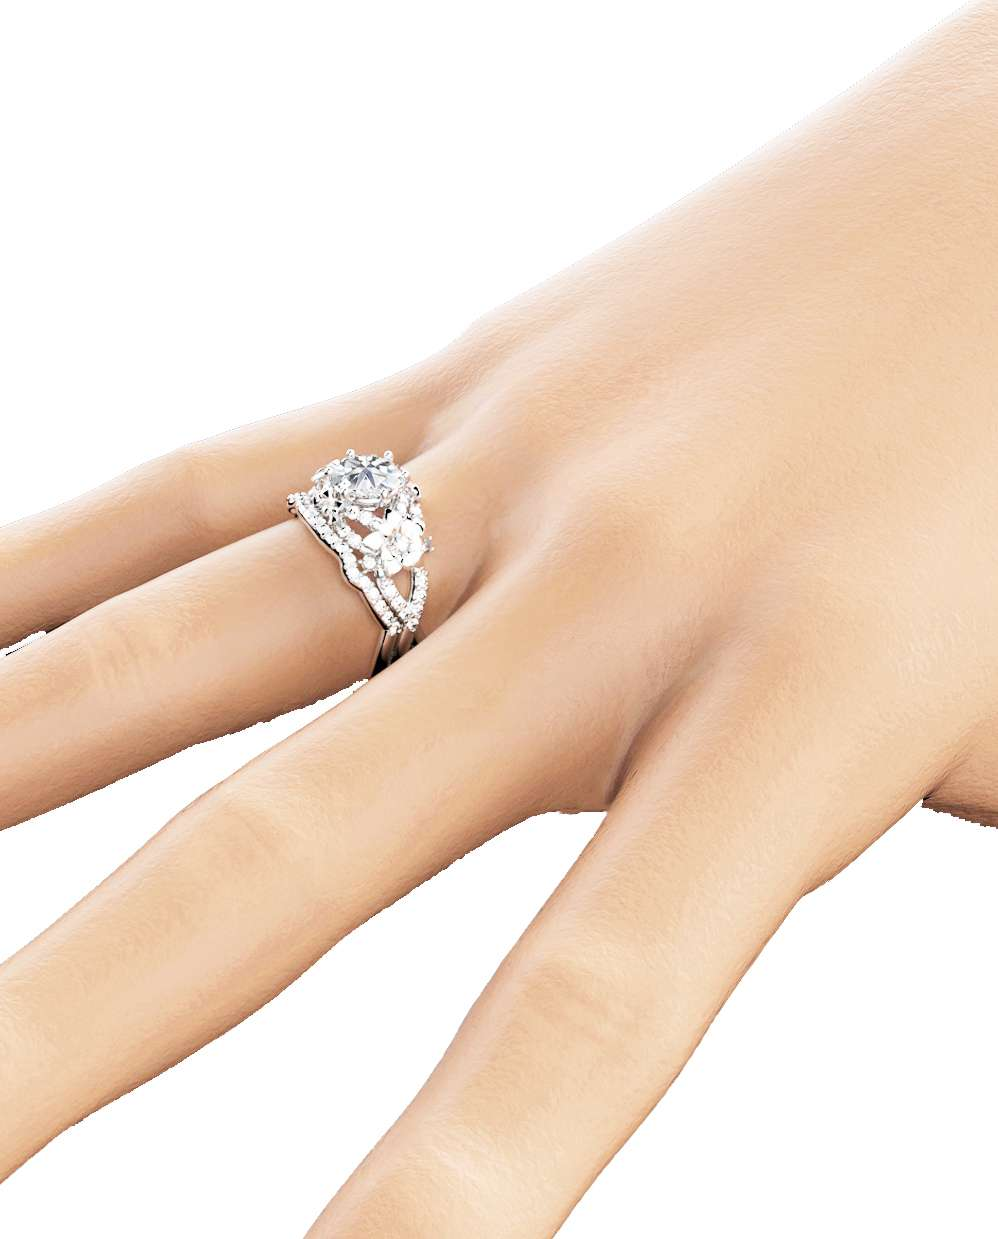 Floral Moissanite Engagement Ring Set 14K White Gold Ring with Matching Band Moissanite Engagement Rings